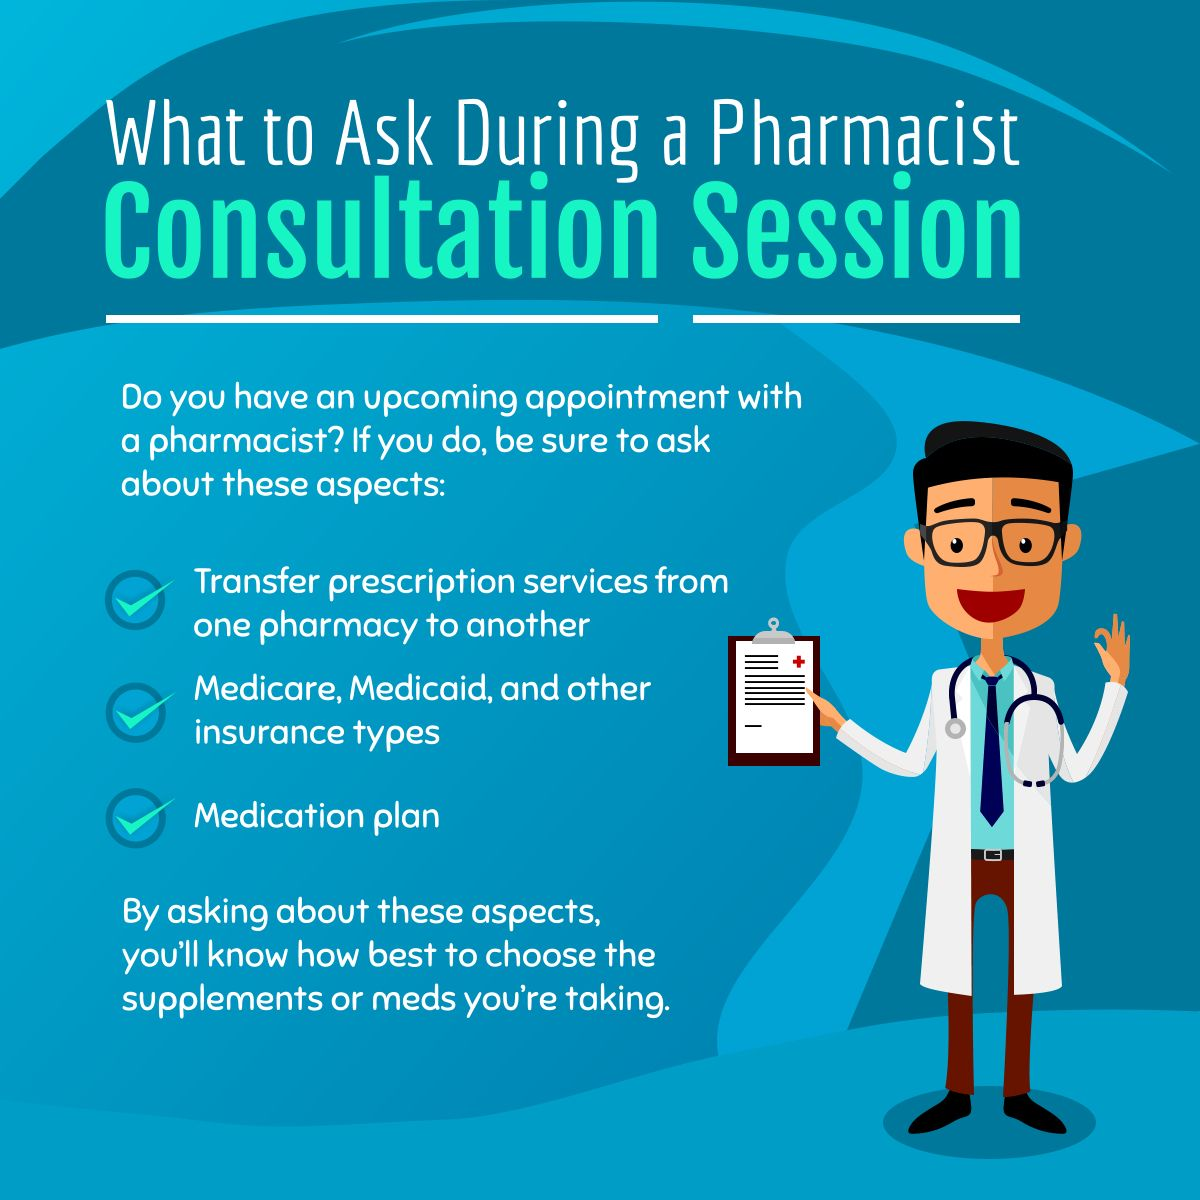 What To Ask During A Pharmacist Consultation Session